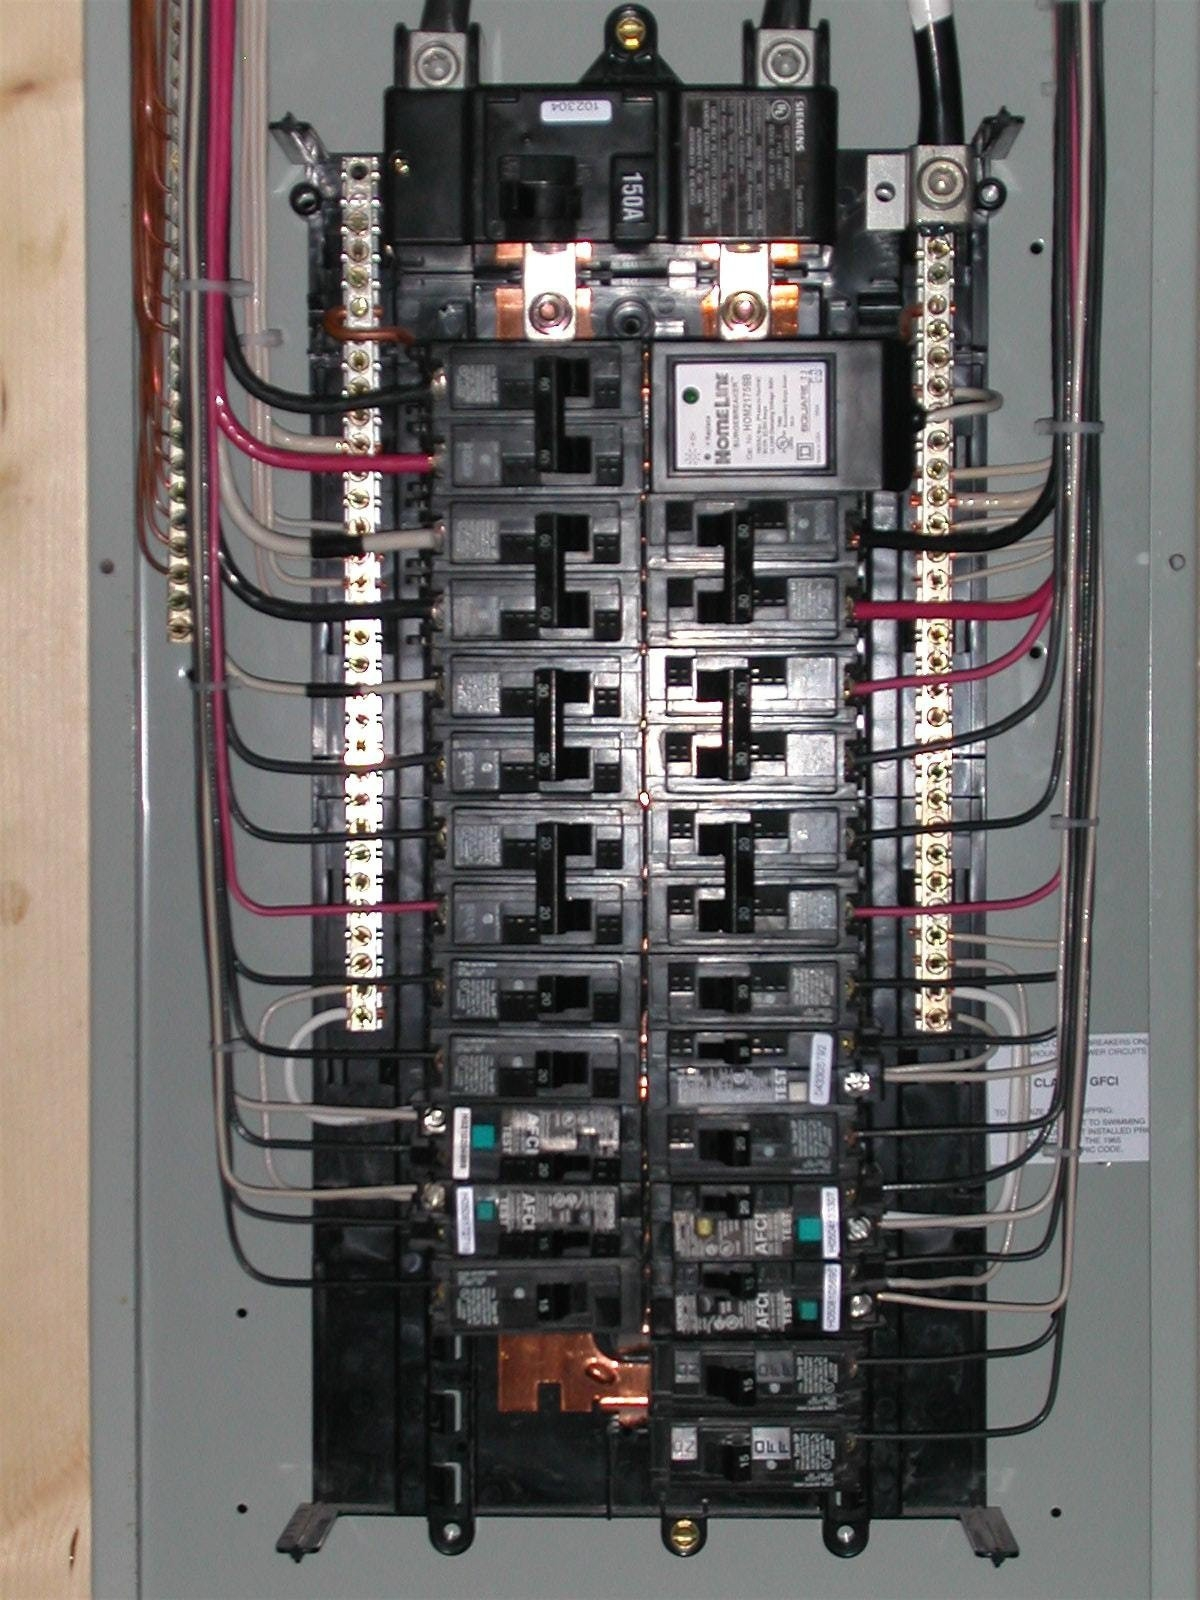 E38 Wiring Diagram Free Download Wiring Diagram And Circuit Diagram